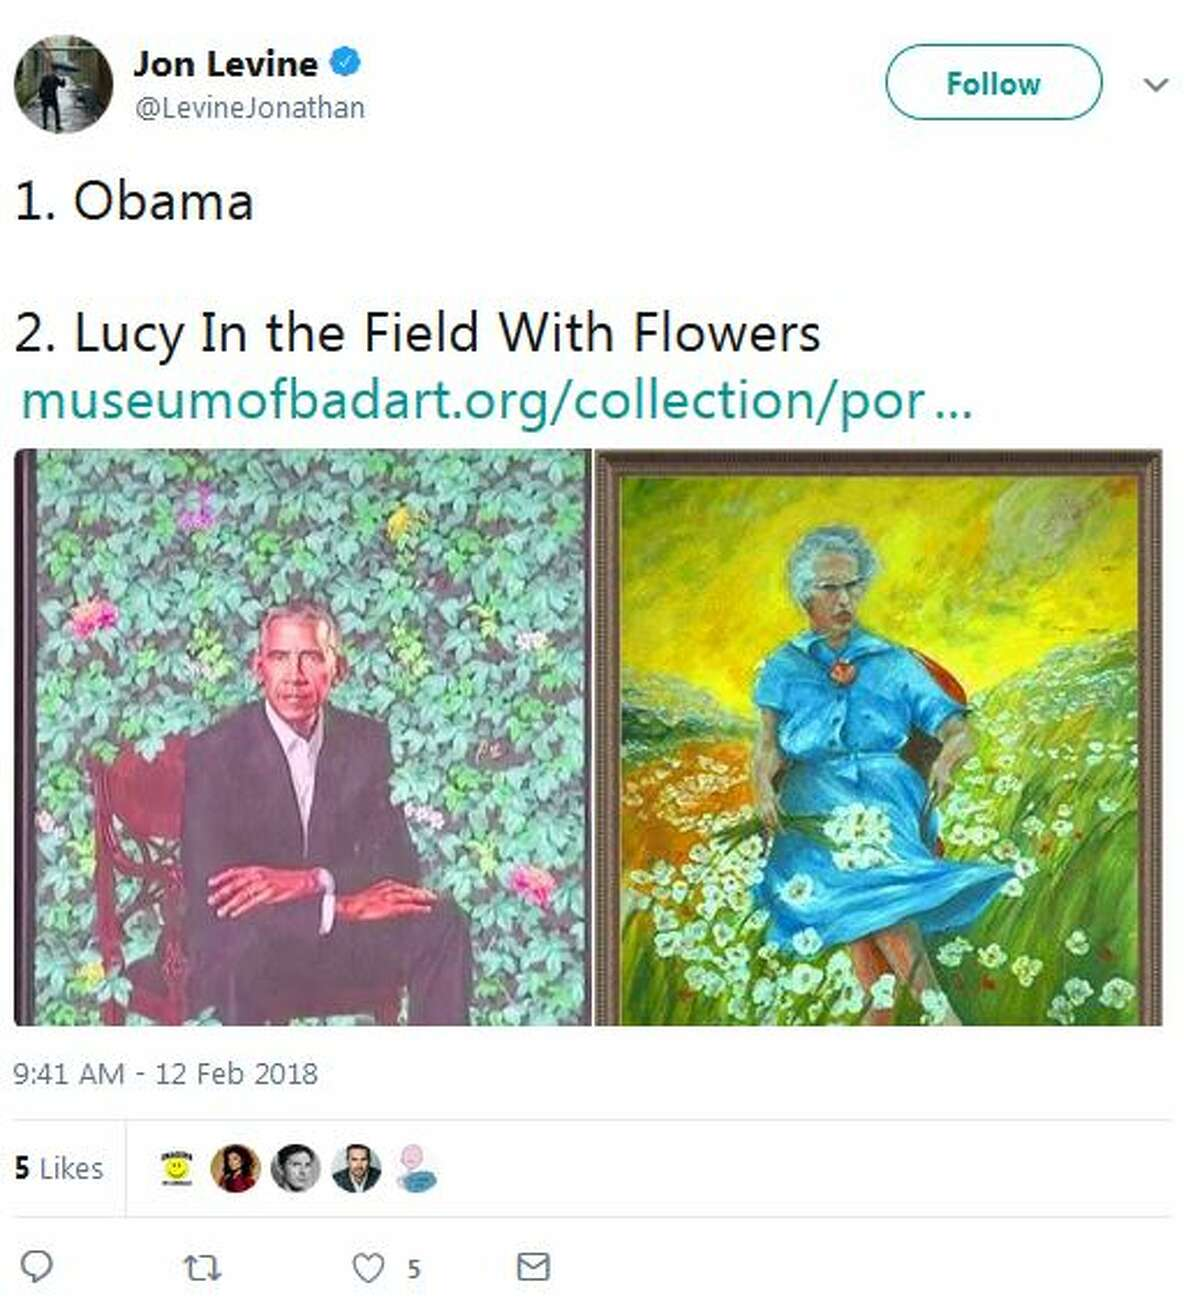 @LevineJonathan: 1. Obama 2. Lucy In the Field With Flowers